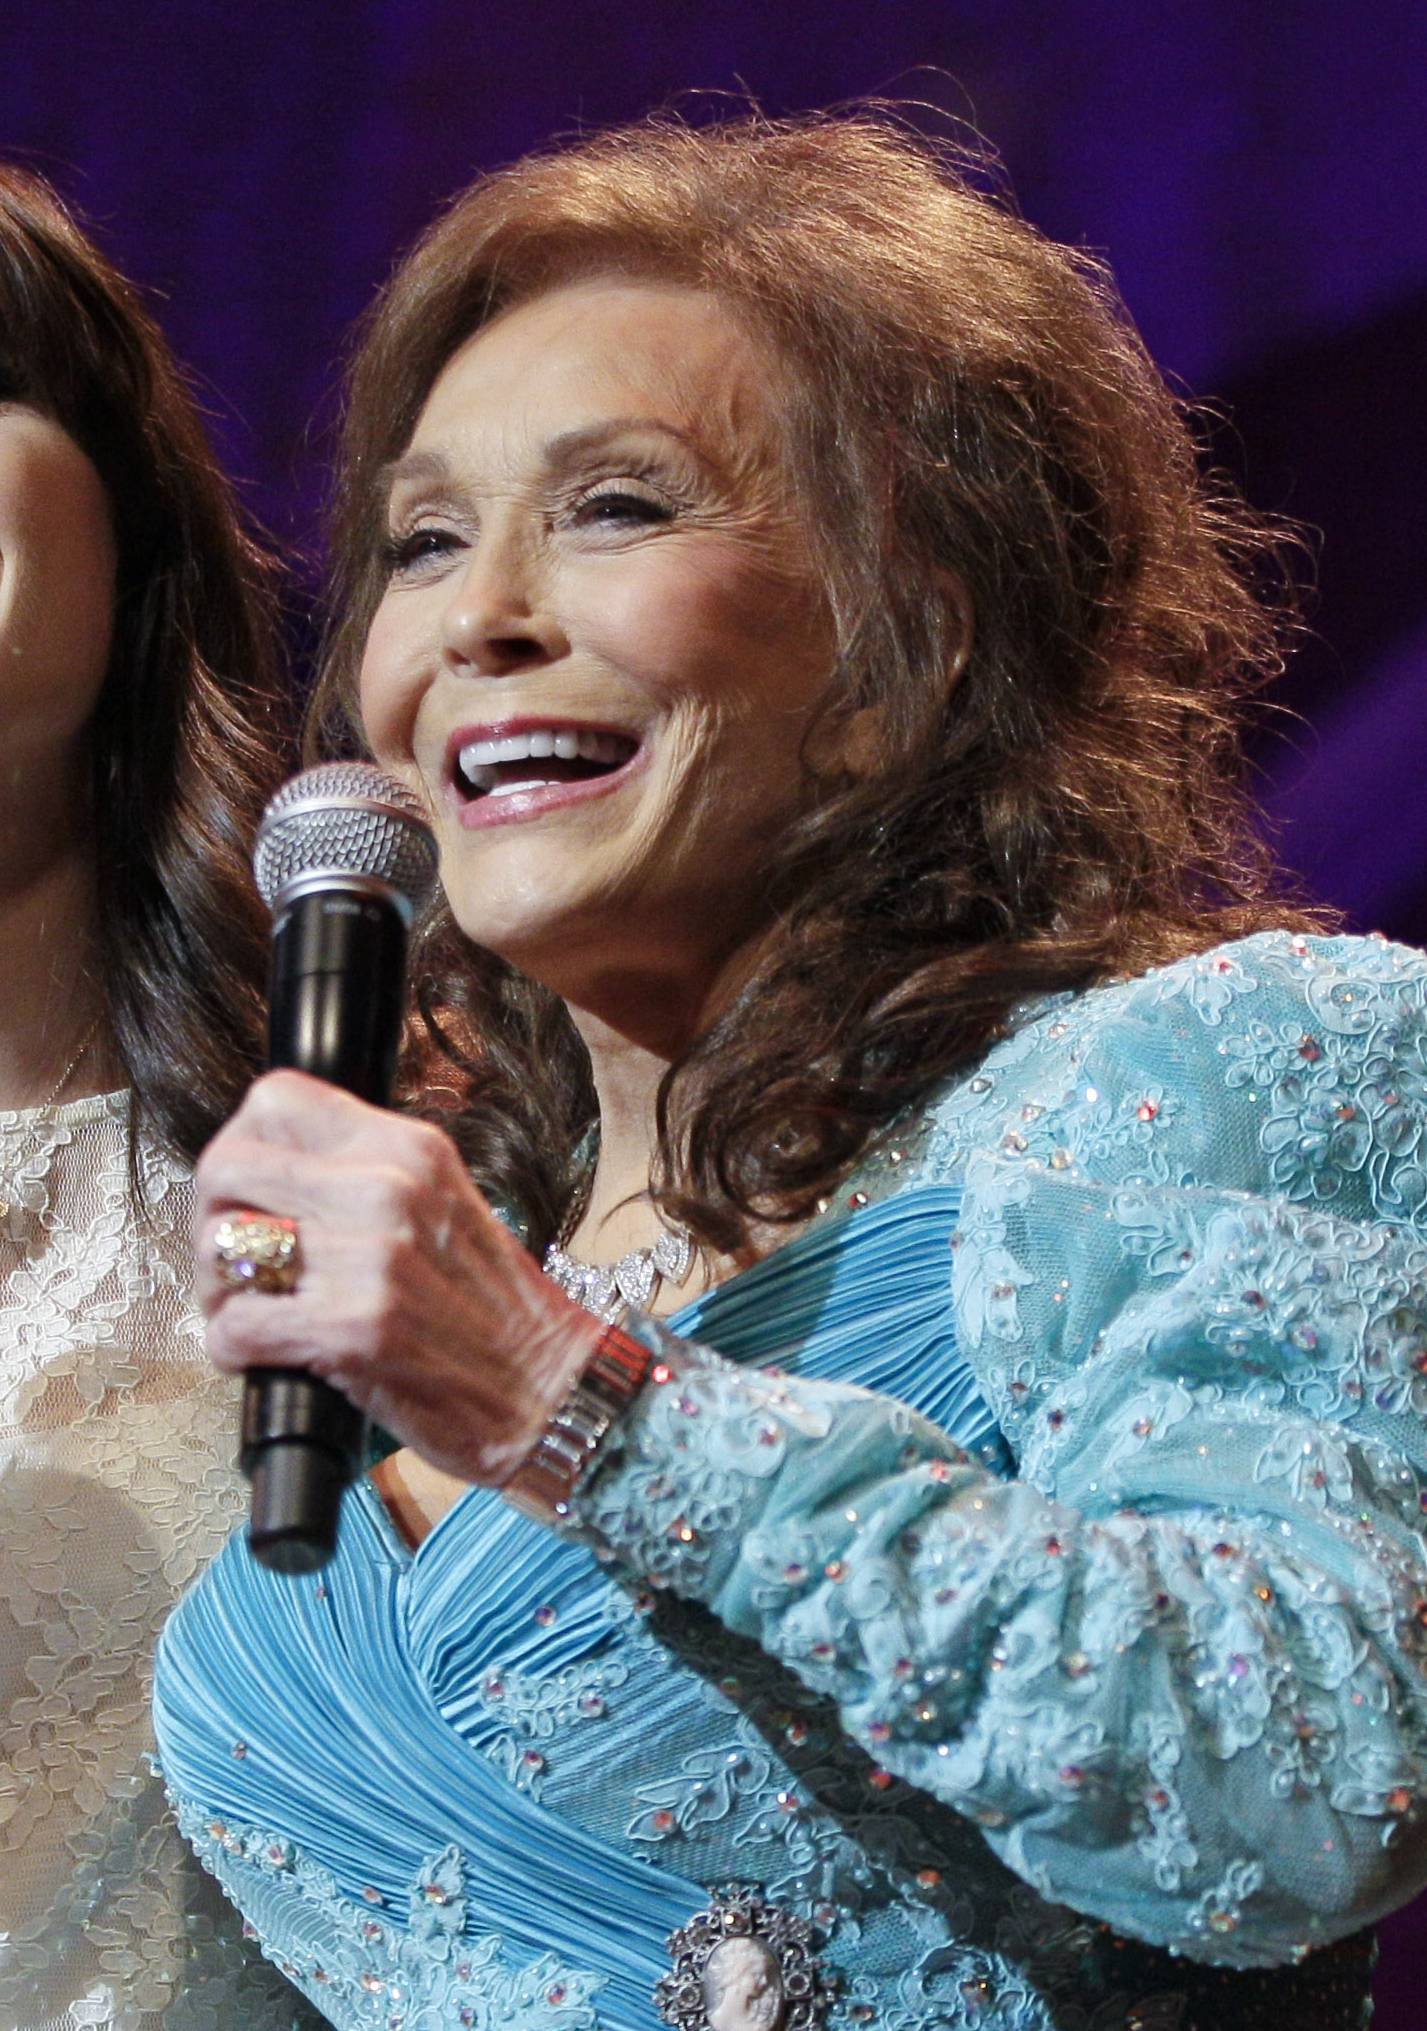 Loretta Lynn will receive a lifetime achievement award for songwriting at this year's Americana Music Association Honors and Awards ceremony this September in Nashville.